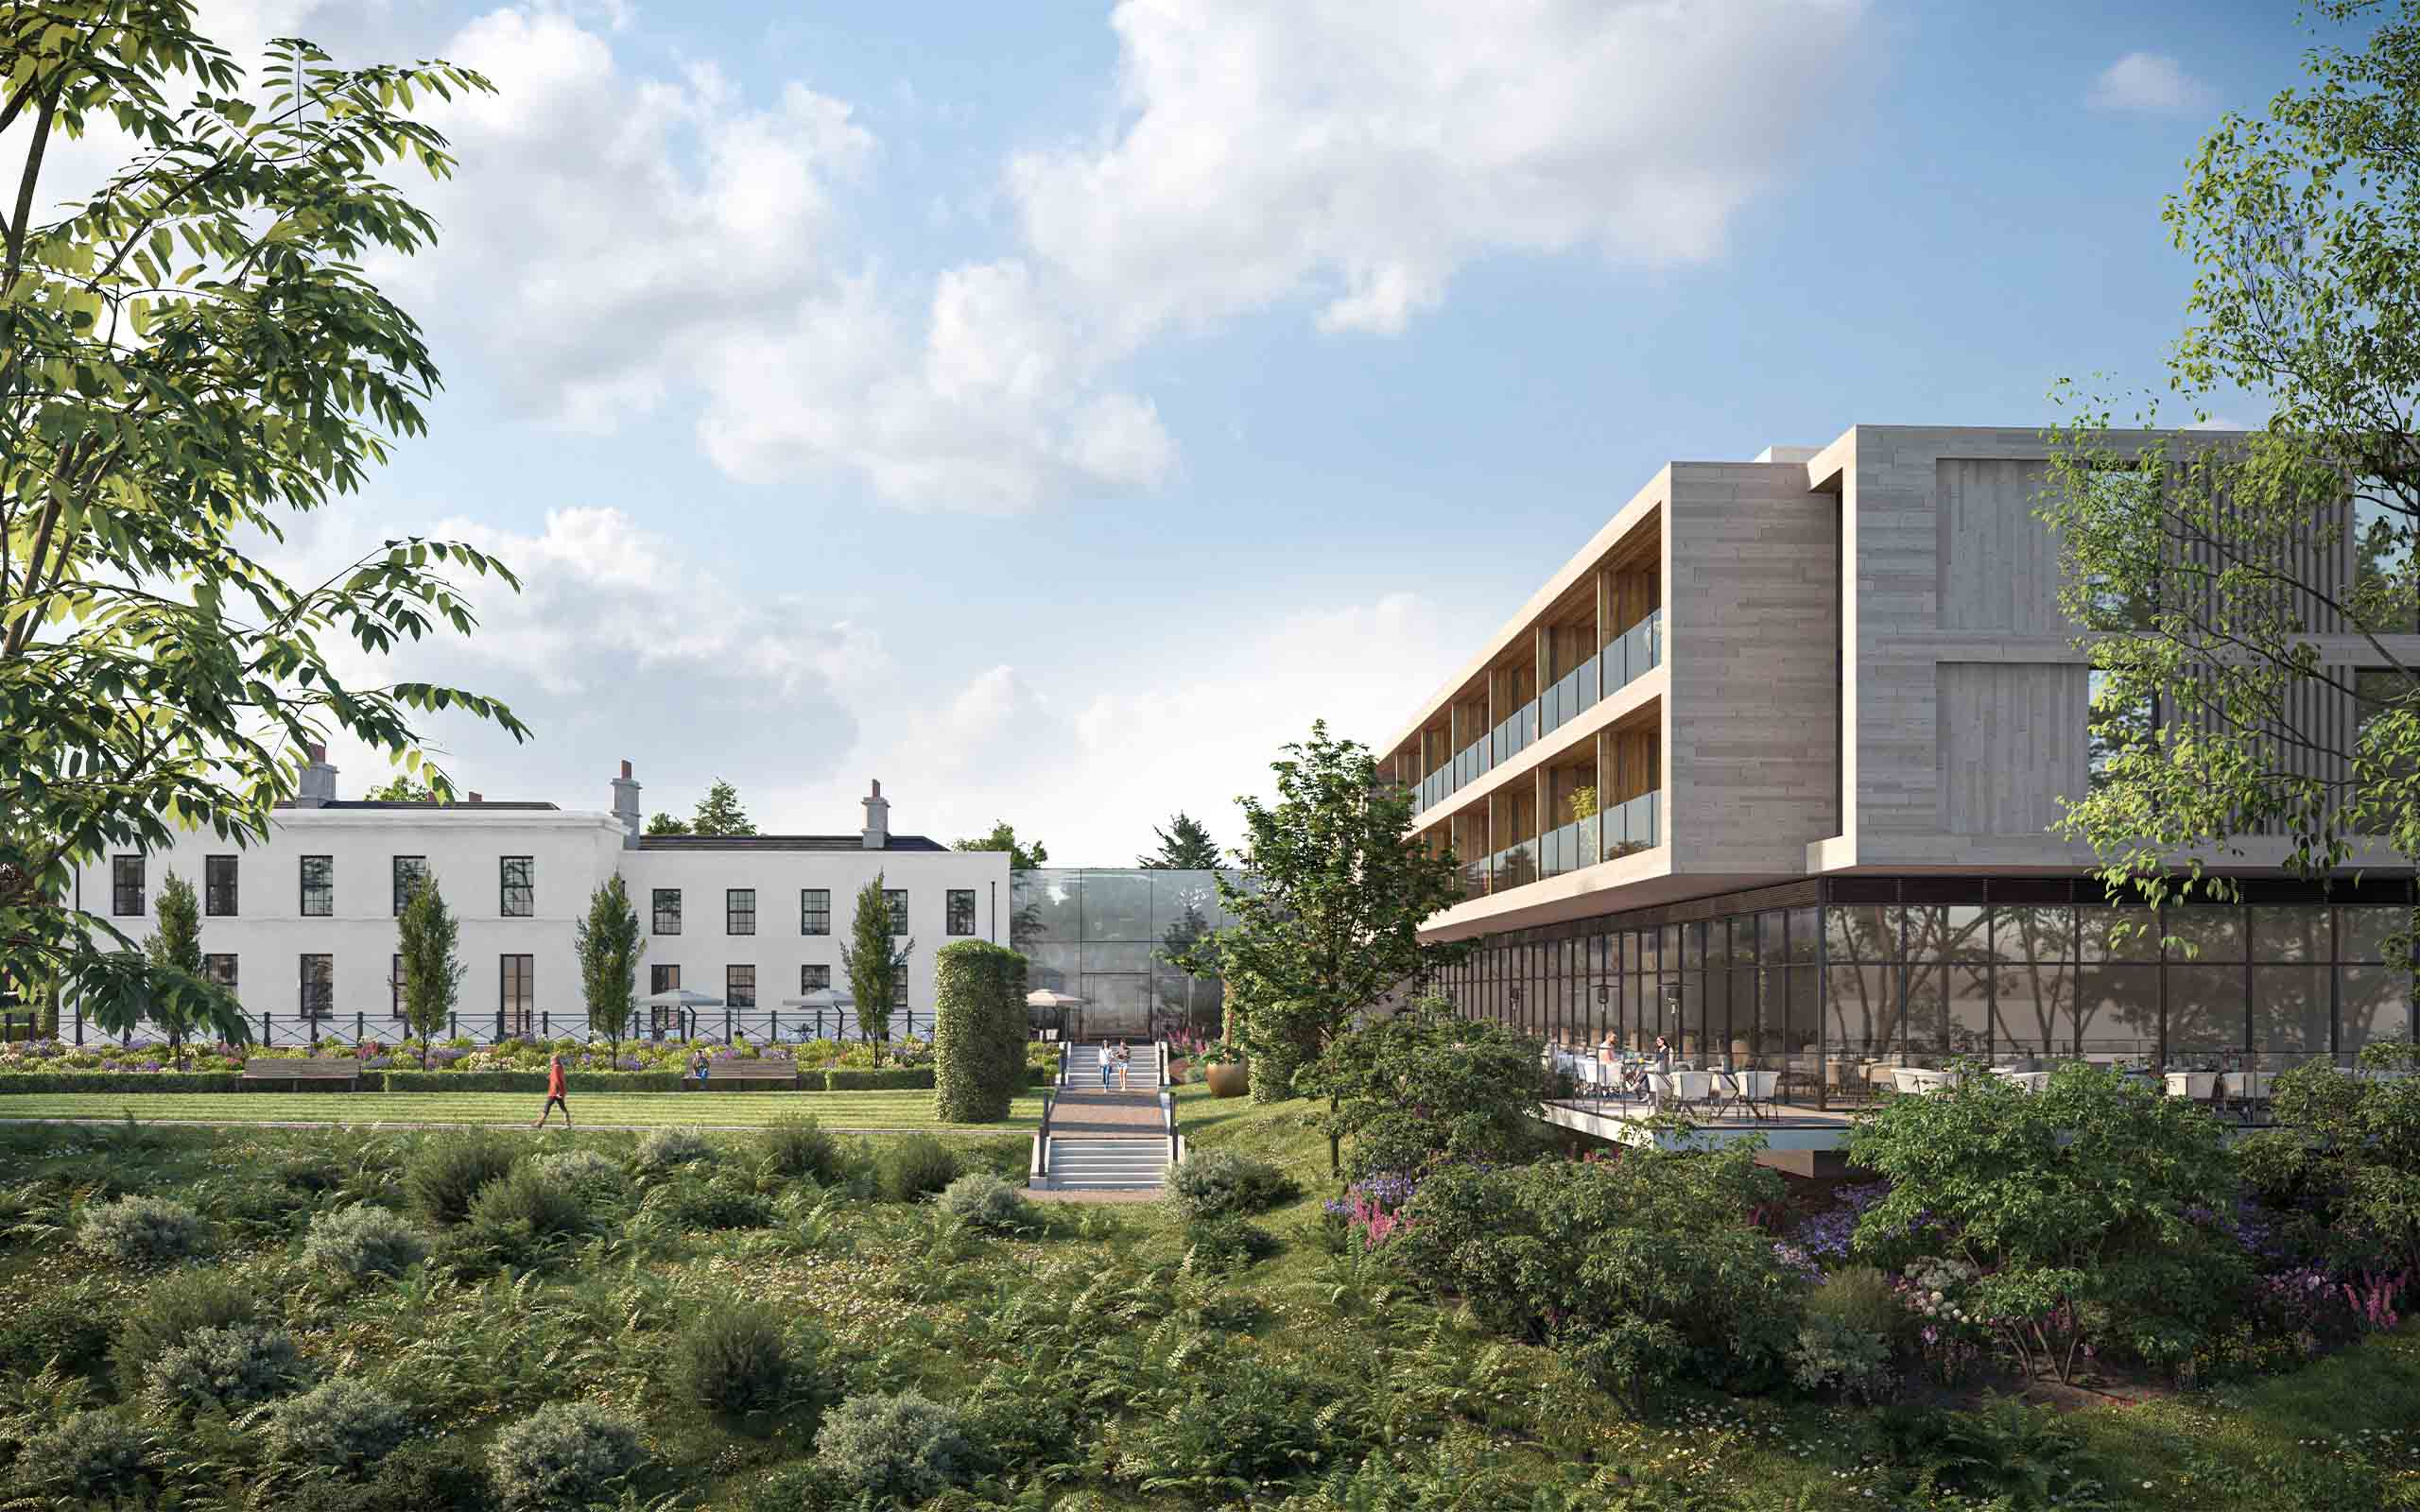 Architectural CGI of Luxury 5-Star Hotel in Plans for Bective House, Meath.